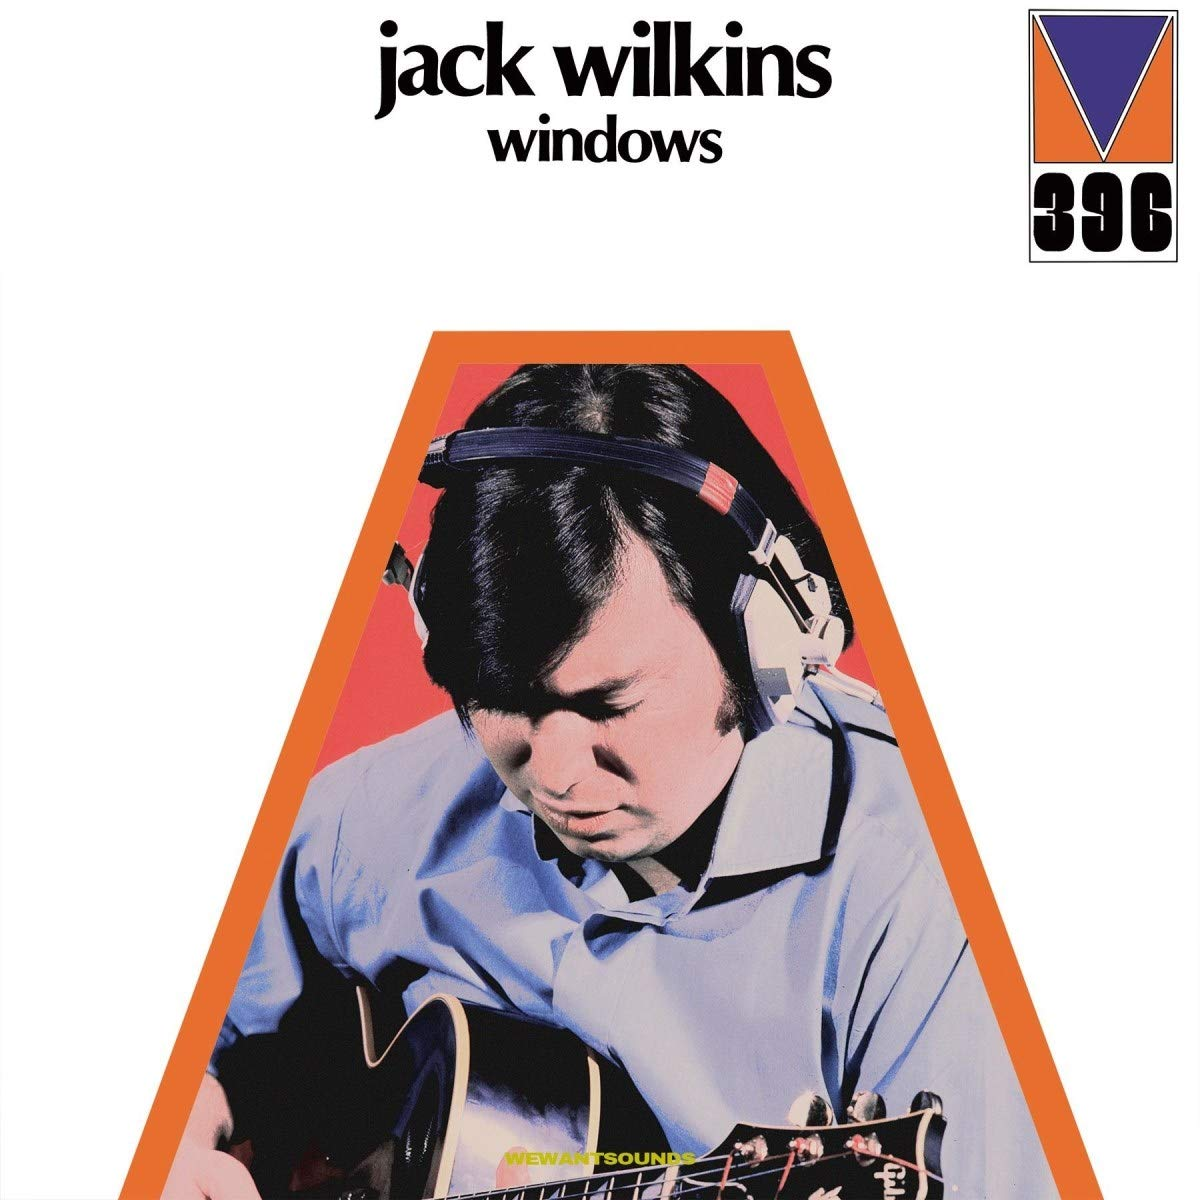 Vinilo : Jack Wilkins - Windows (LP Vinyl)